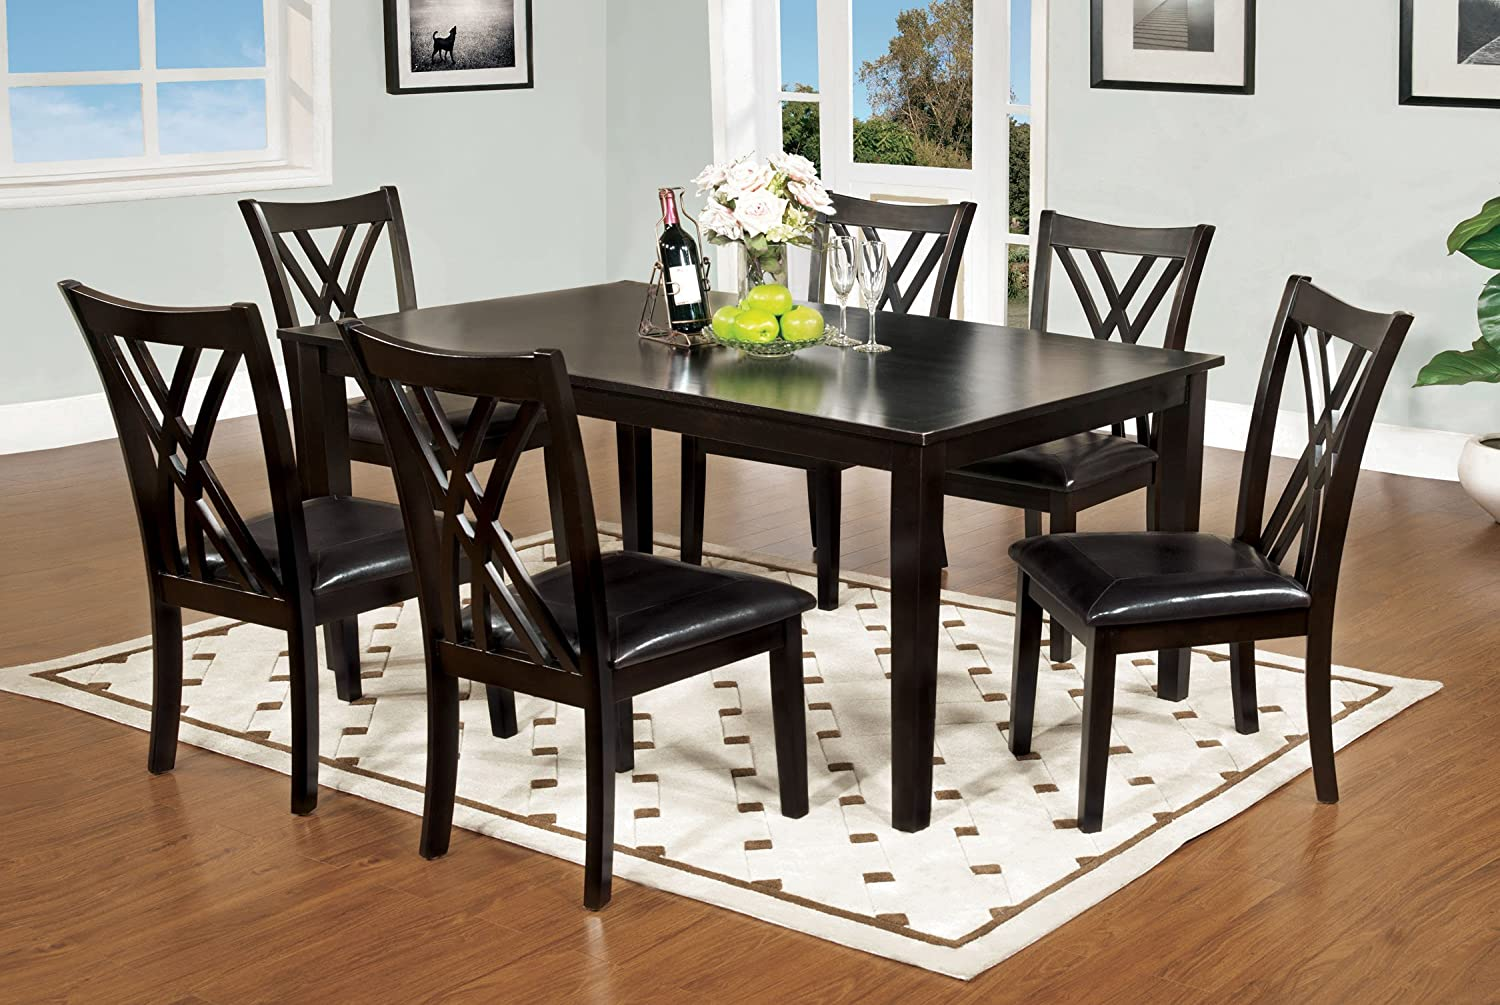 Furniture of America 7-Piece Hearst Rectangular Dining Table and Chair Set - Espresso Finish